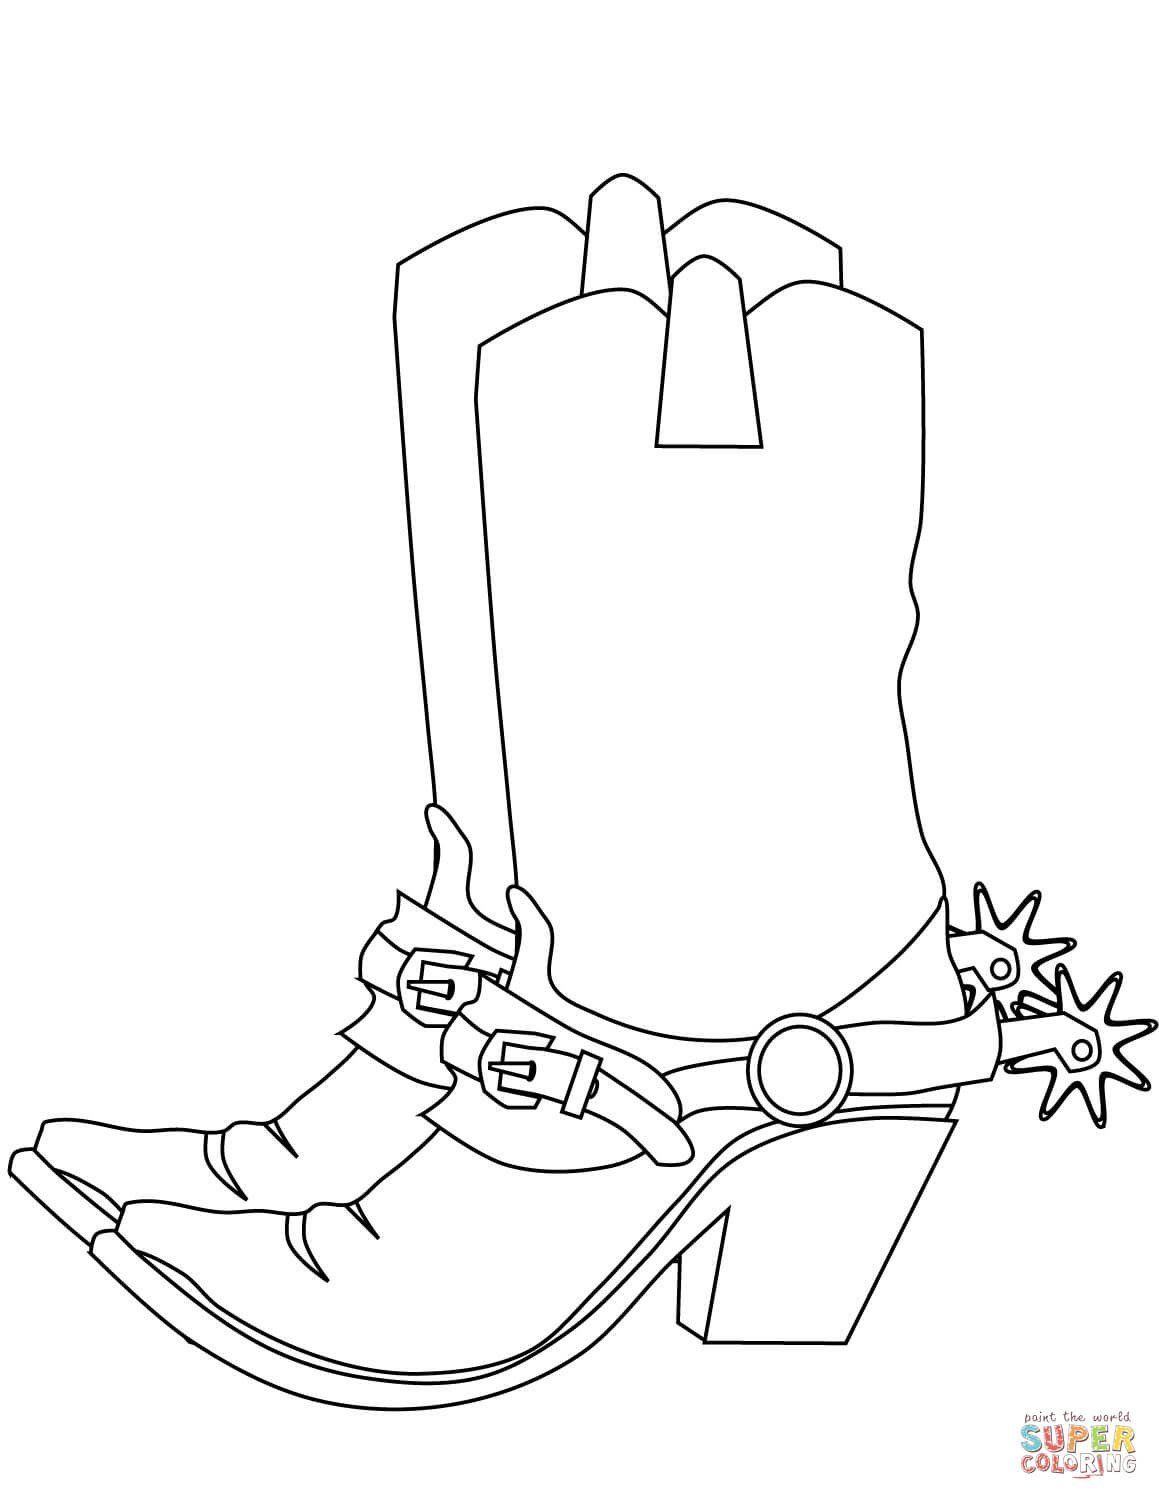 21+ Cowboy cowgirl coloring pages information